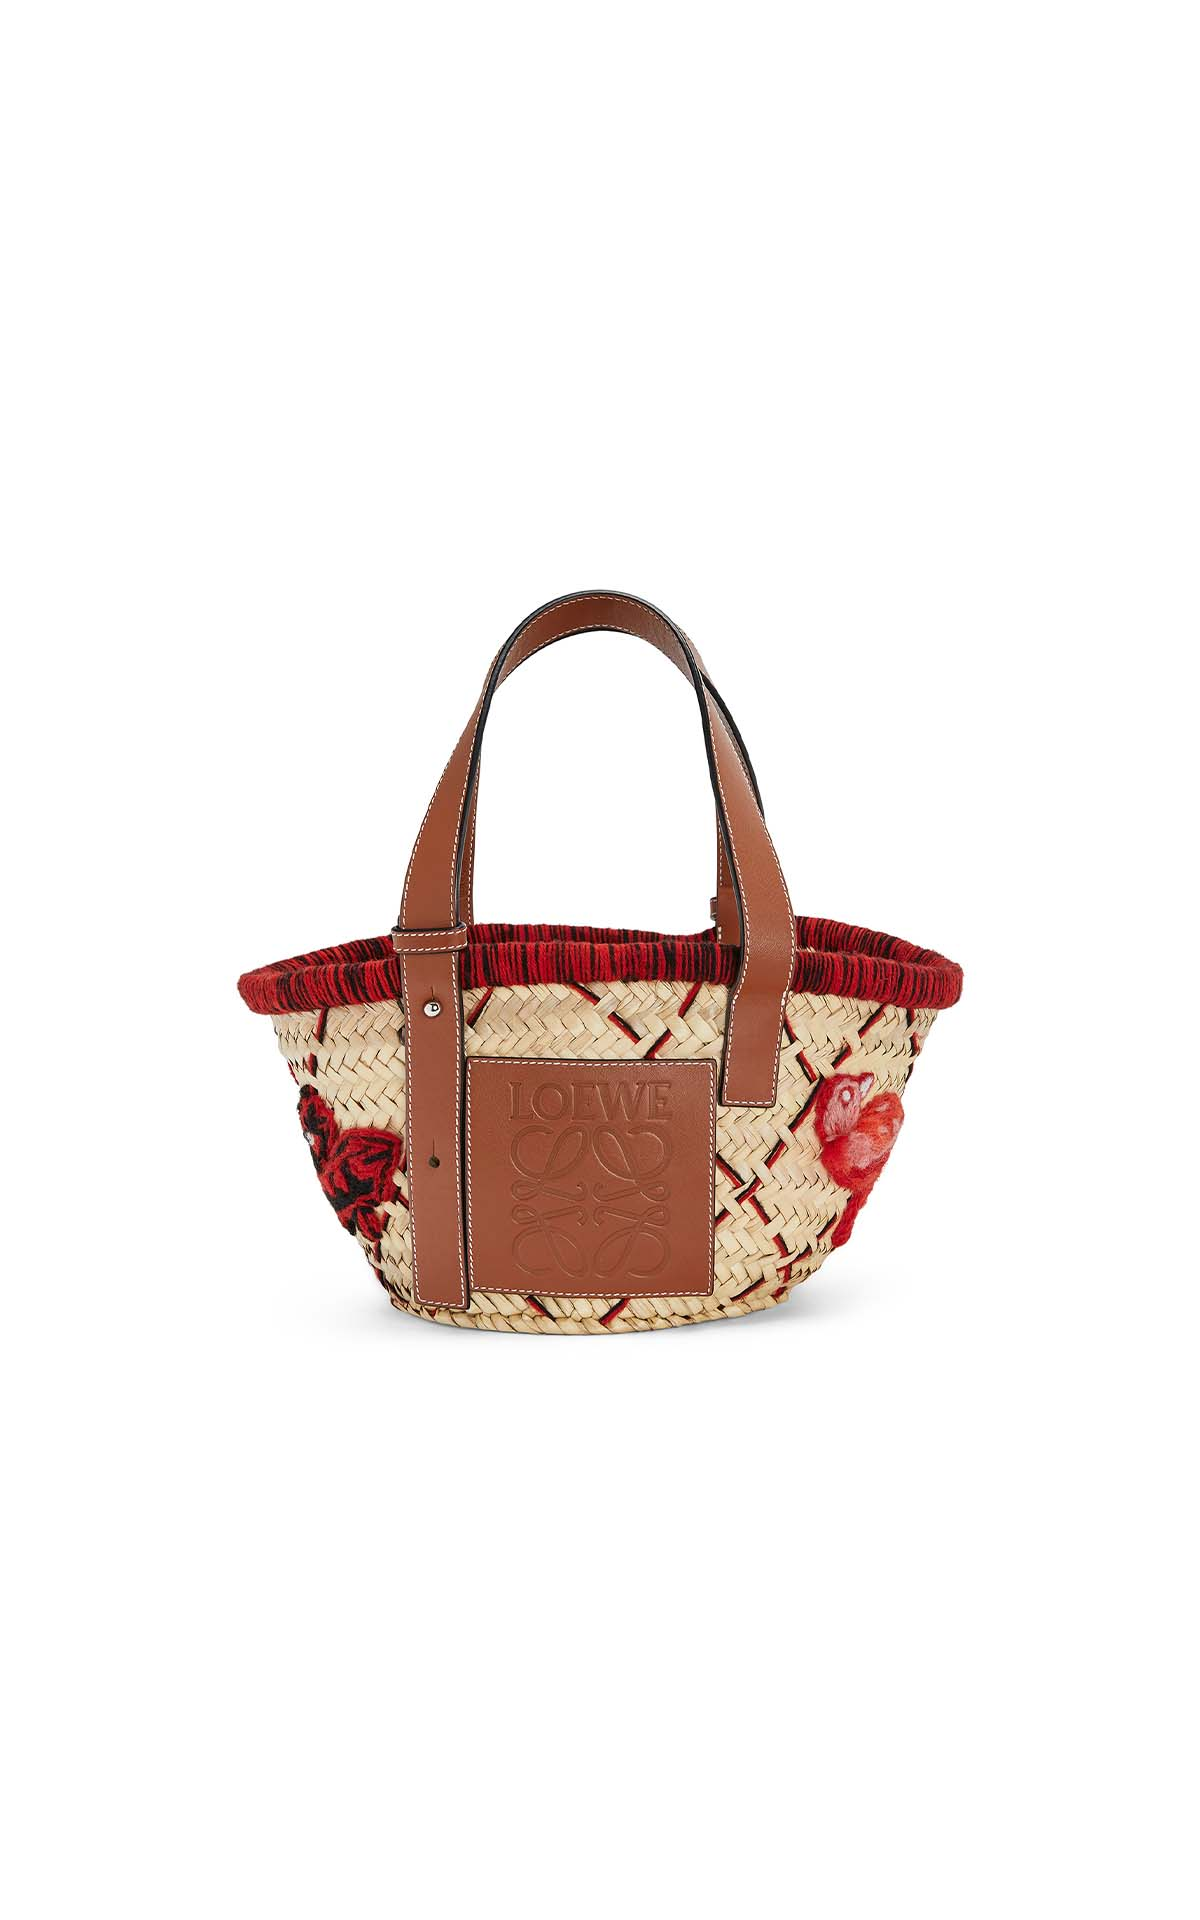 Loewe Basket animal bag at The Bicester Village Shopping Collection